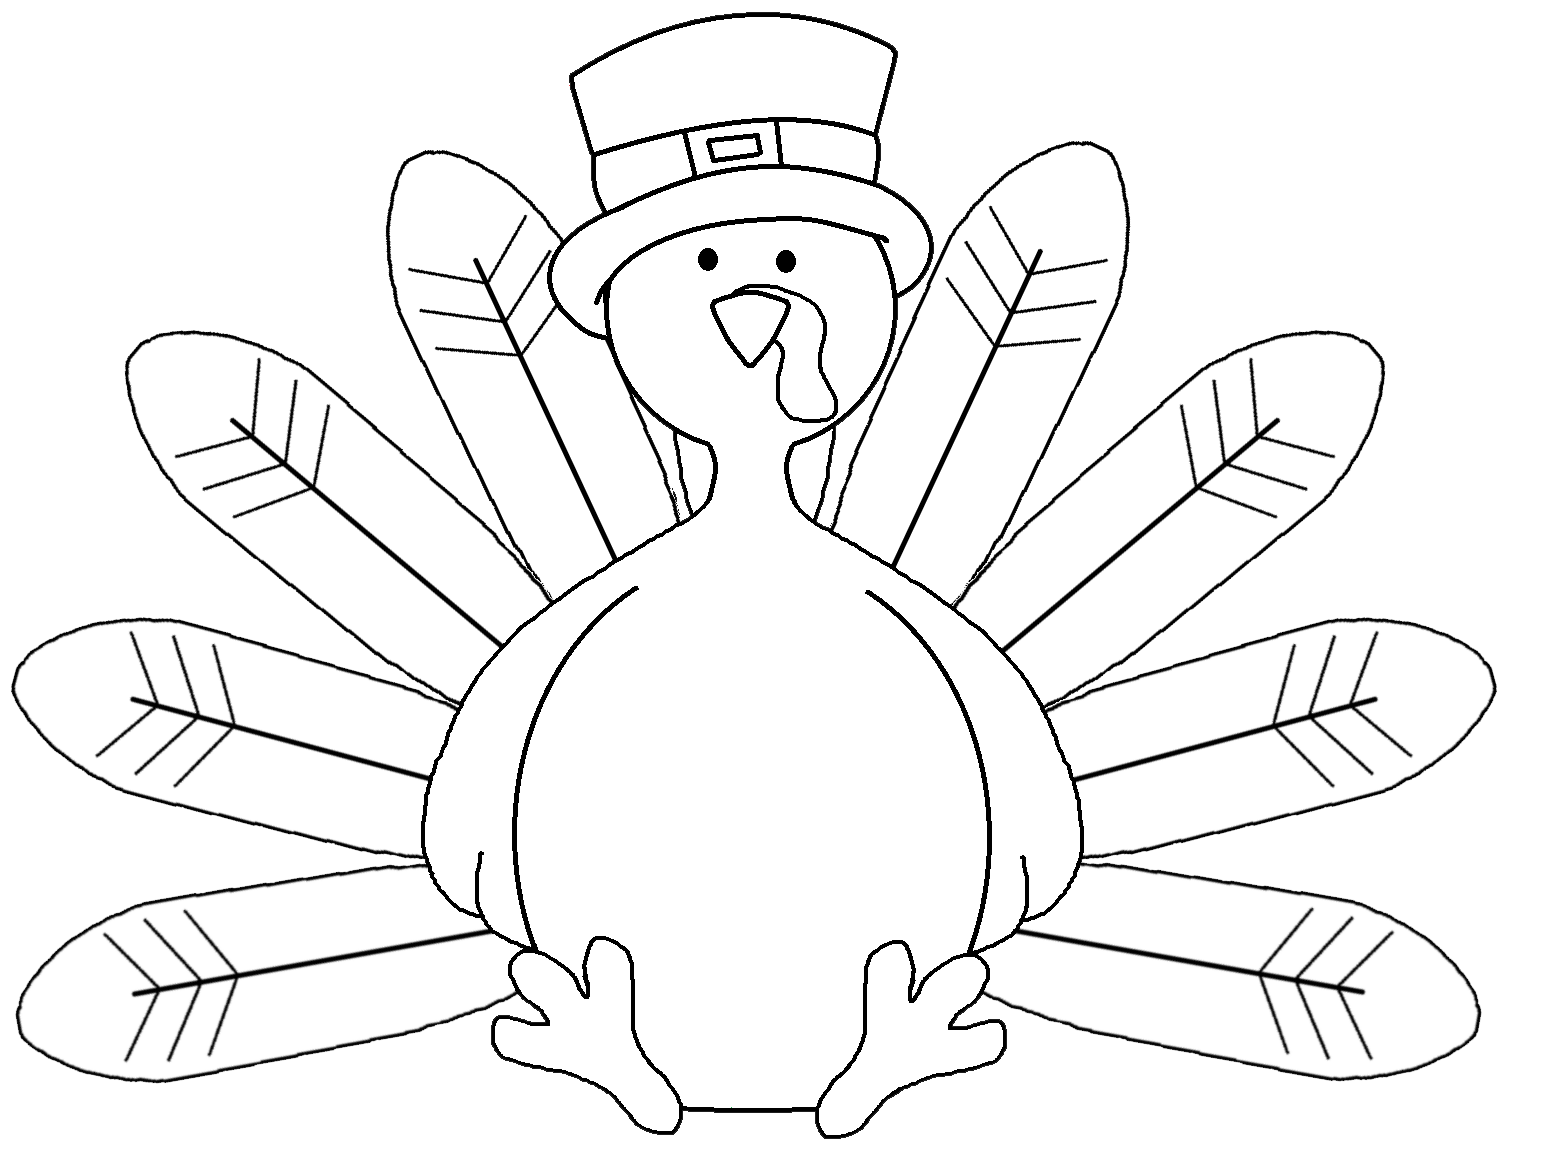 Thanksgiving outline clipart clip black and white library 28+ Collection of Large Thanksgiving Turkey Clipart | High quality ... clip black and white library